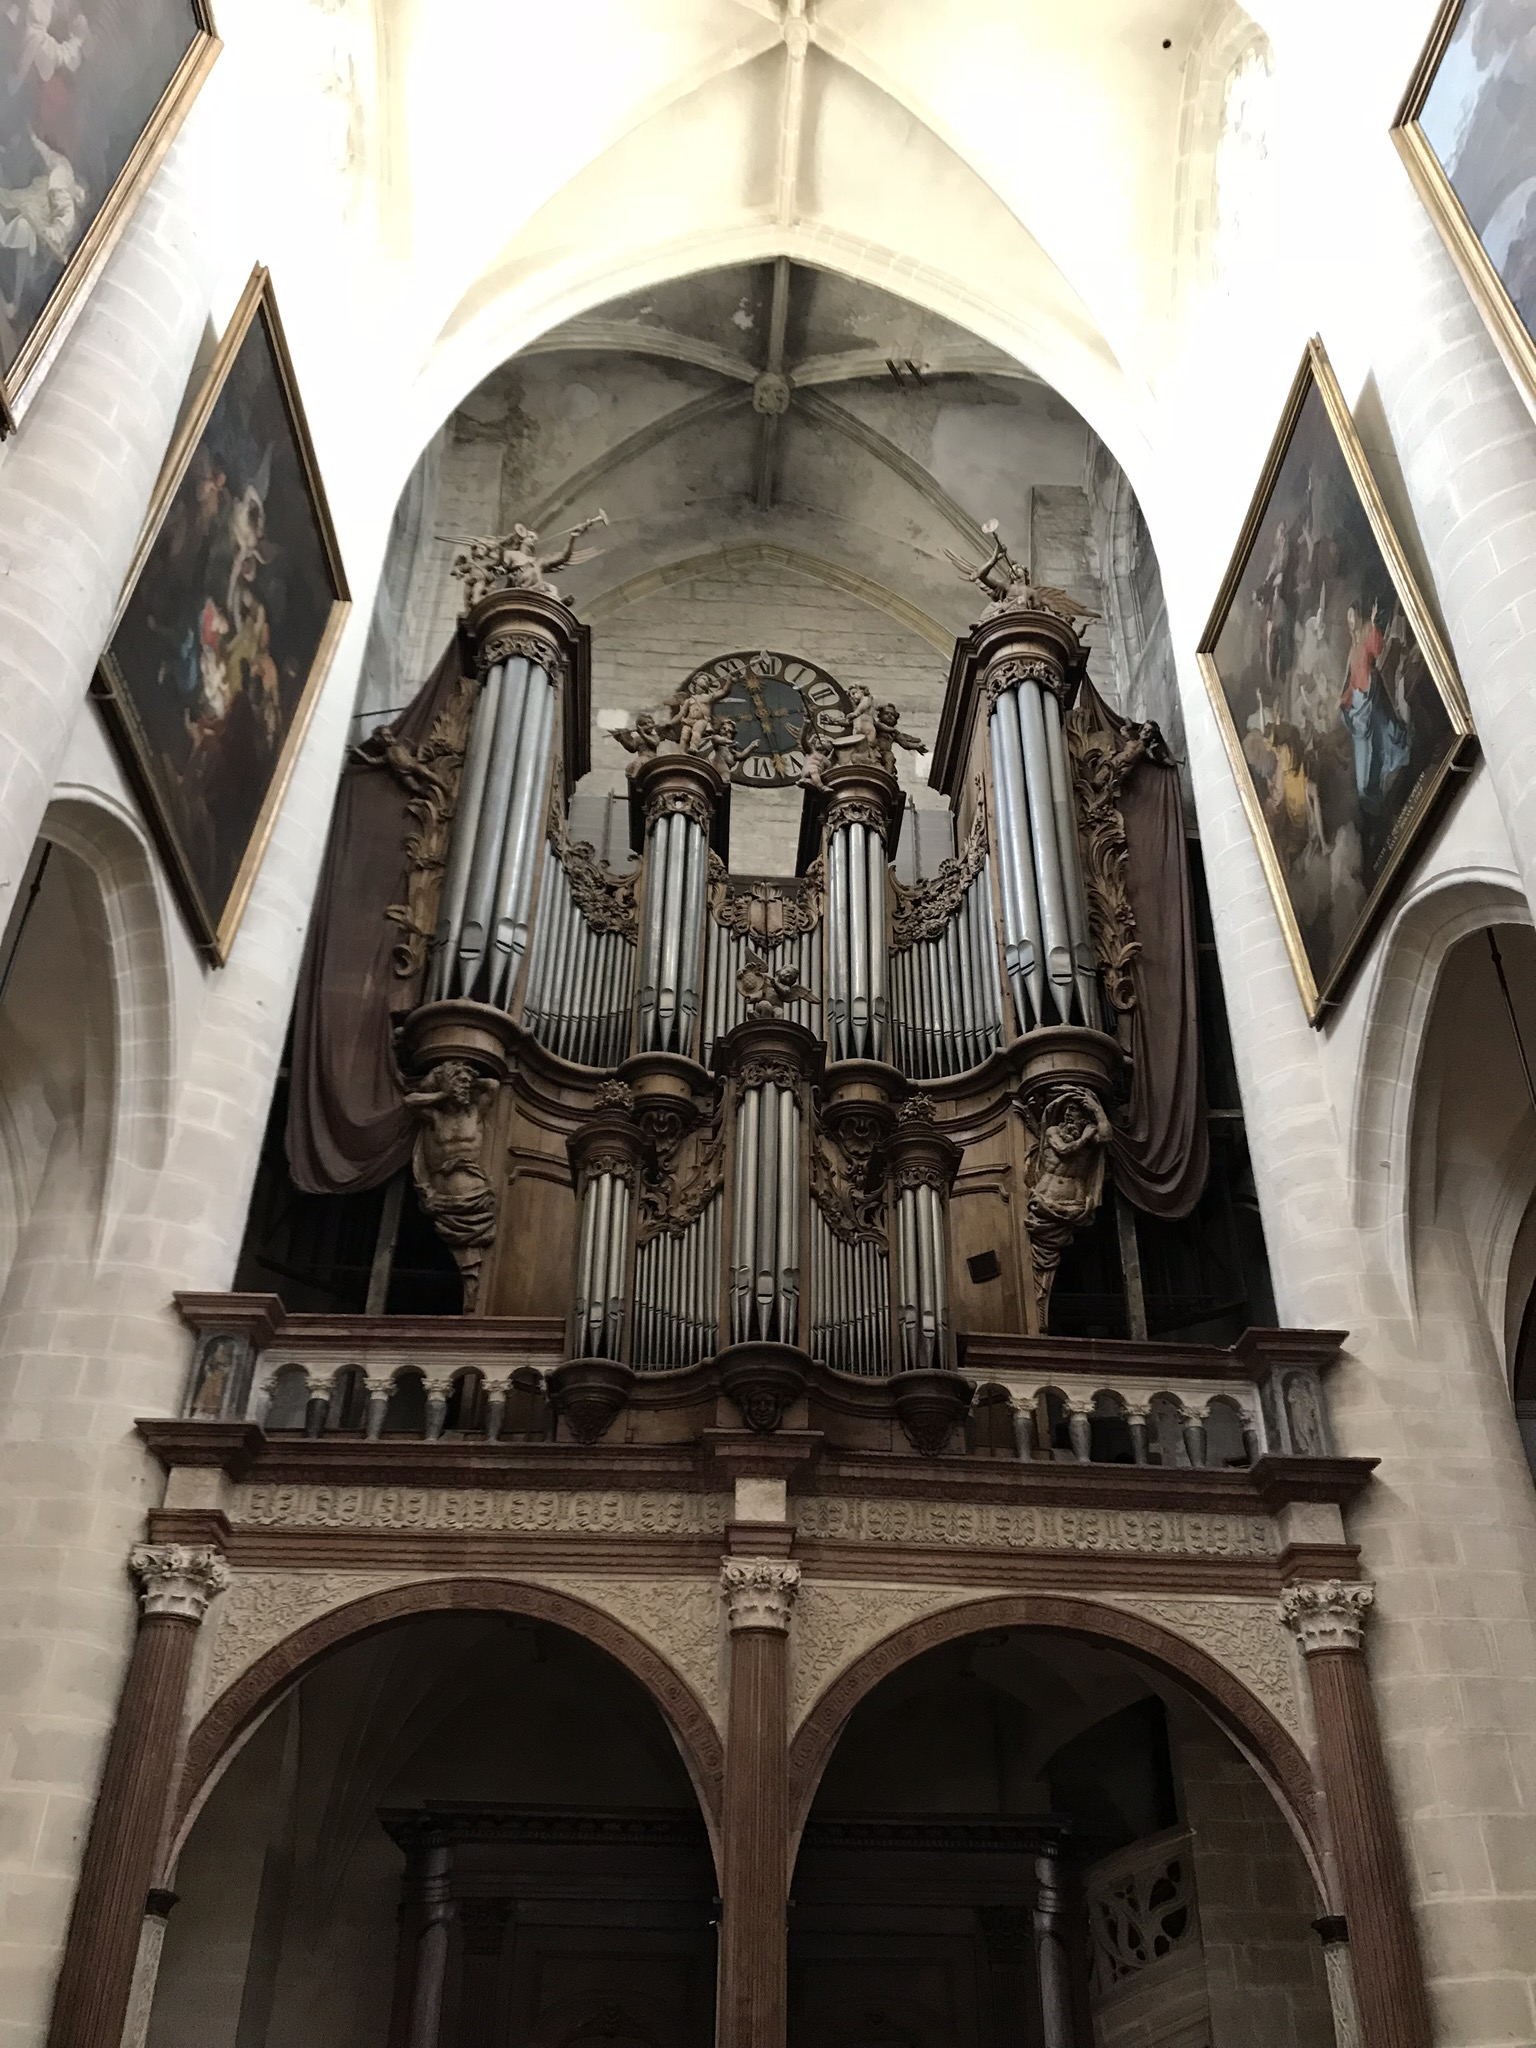 Immaculate wooden carvings adore the organ pipes!